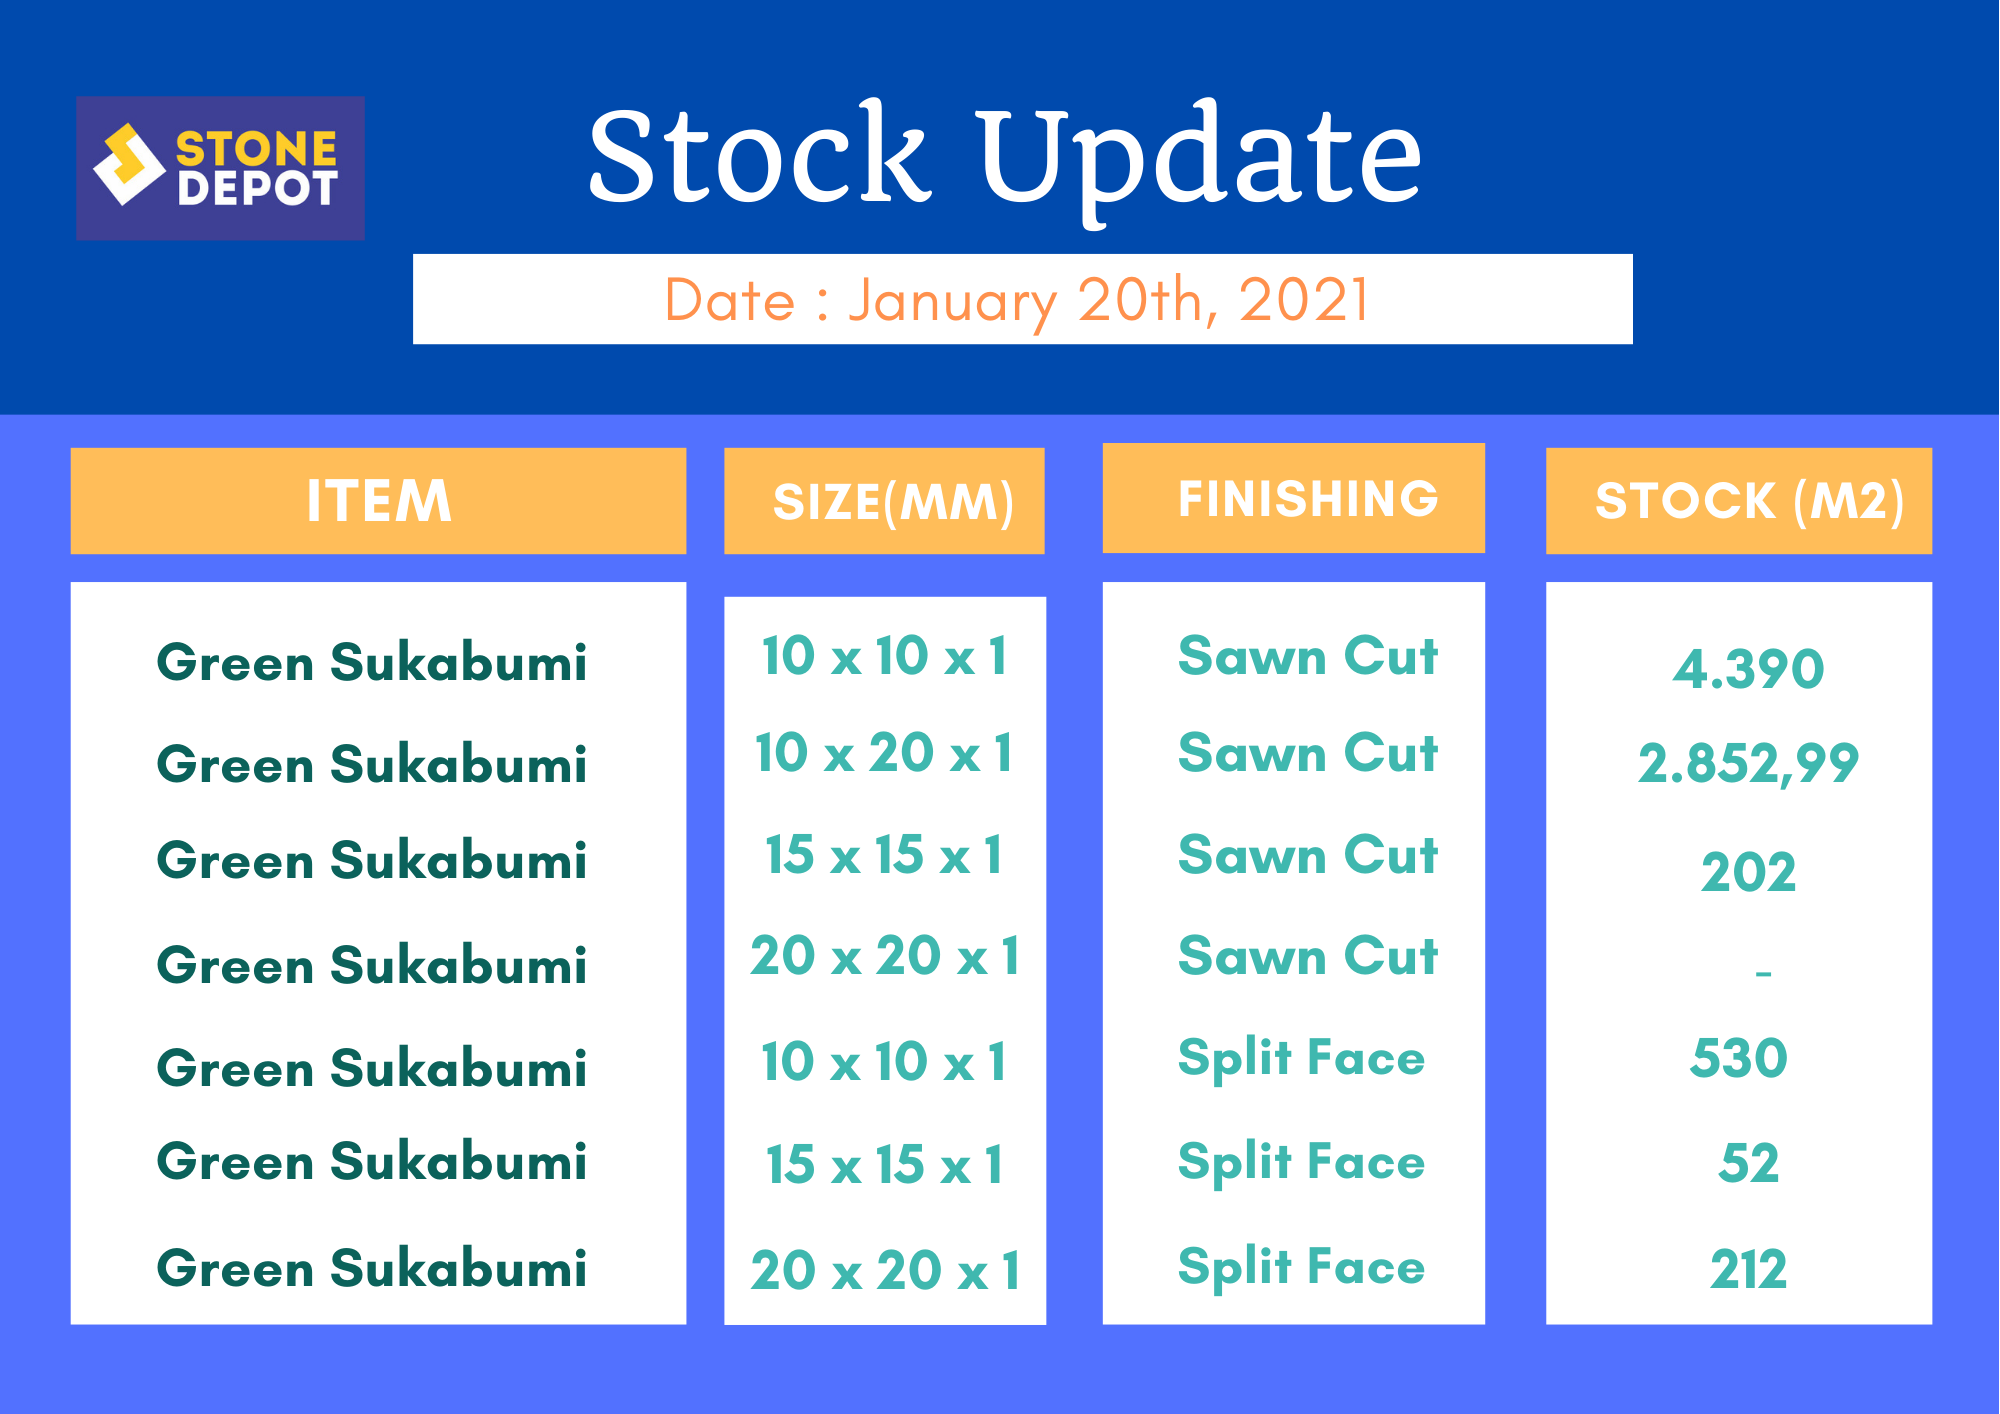 Green Sukabumi Stock on January 2021